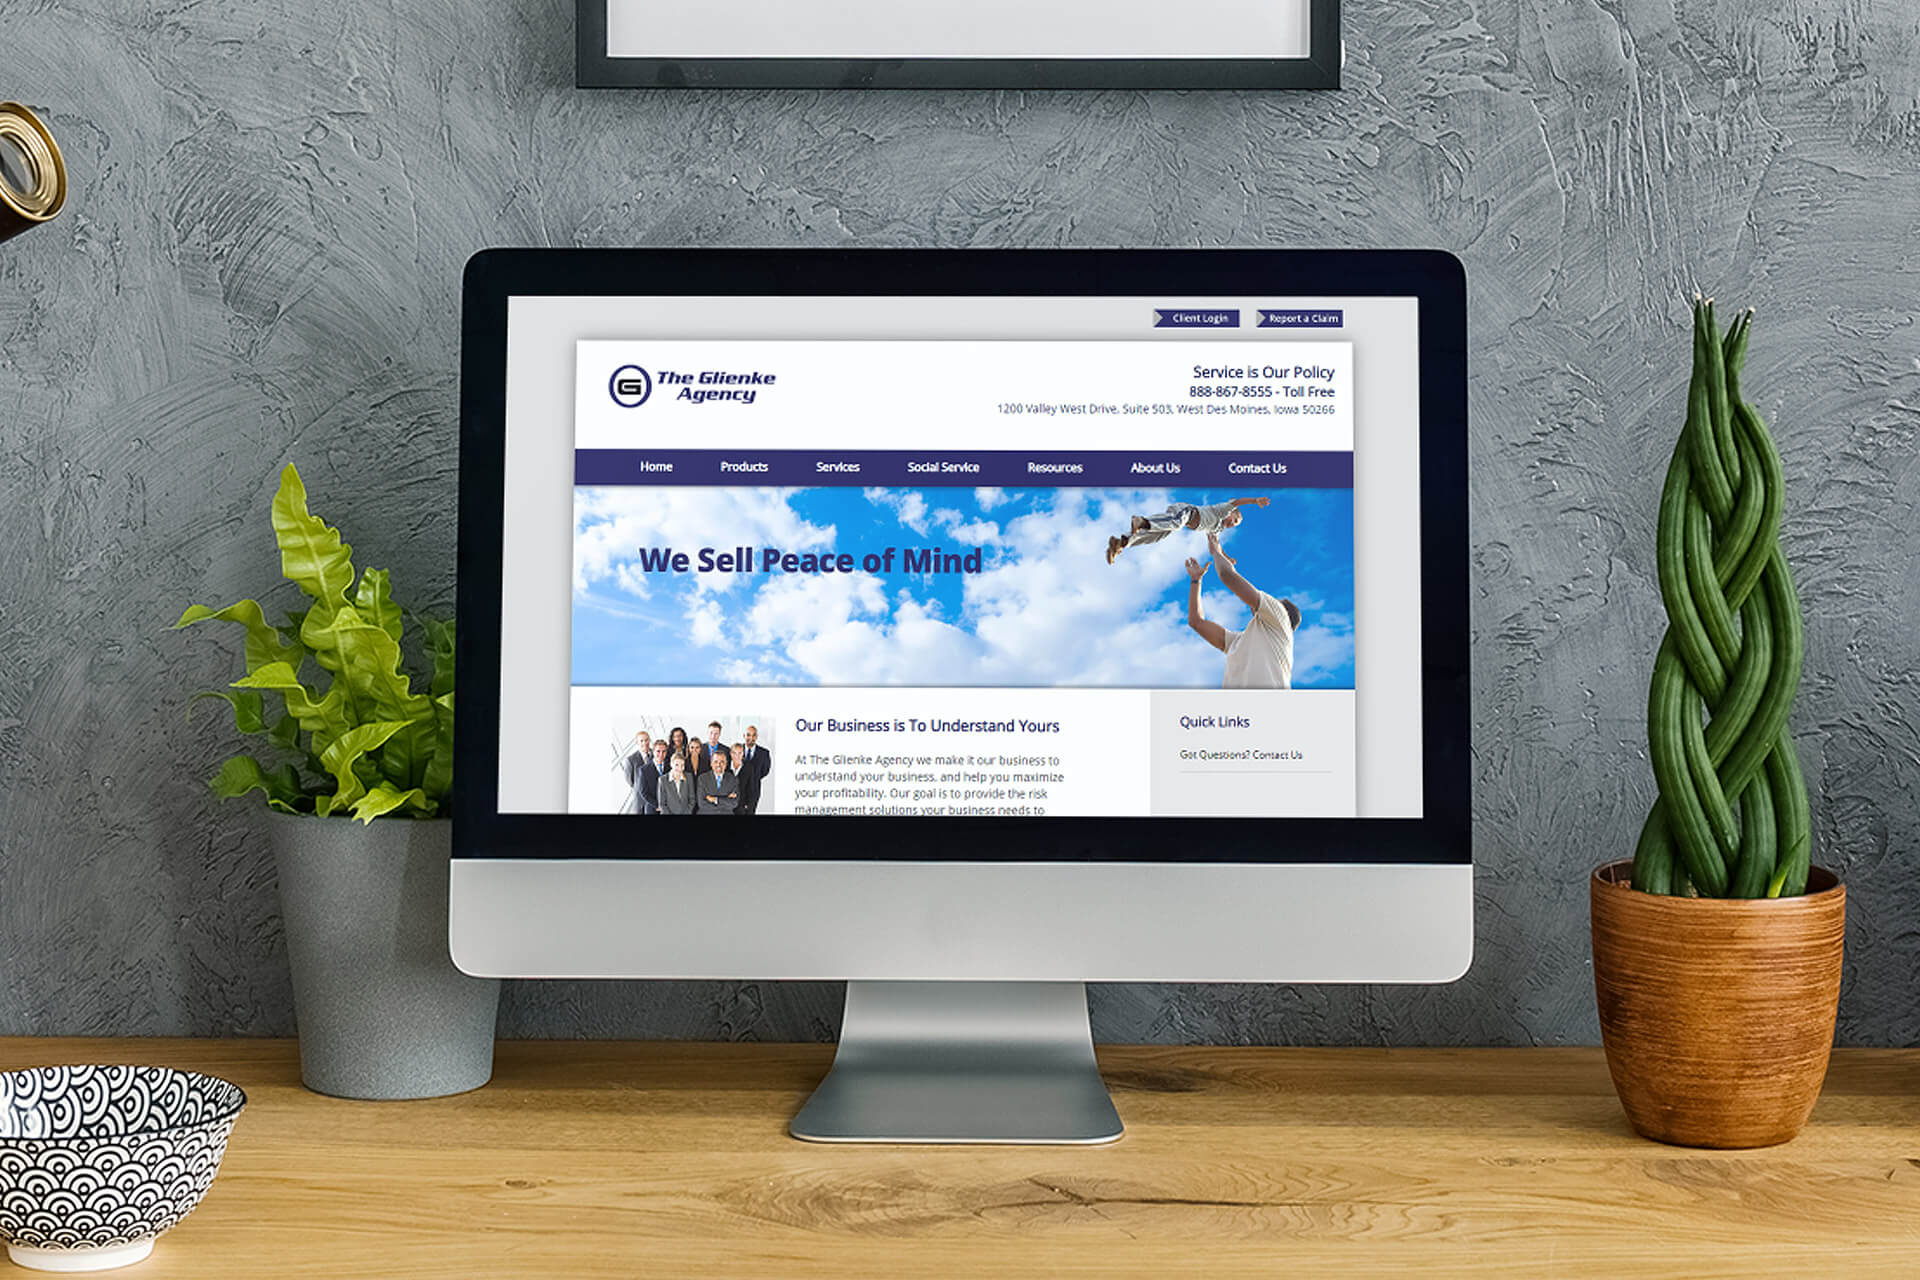 Website Design for Geinke Insurance Agency